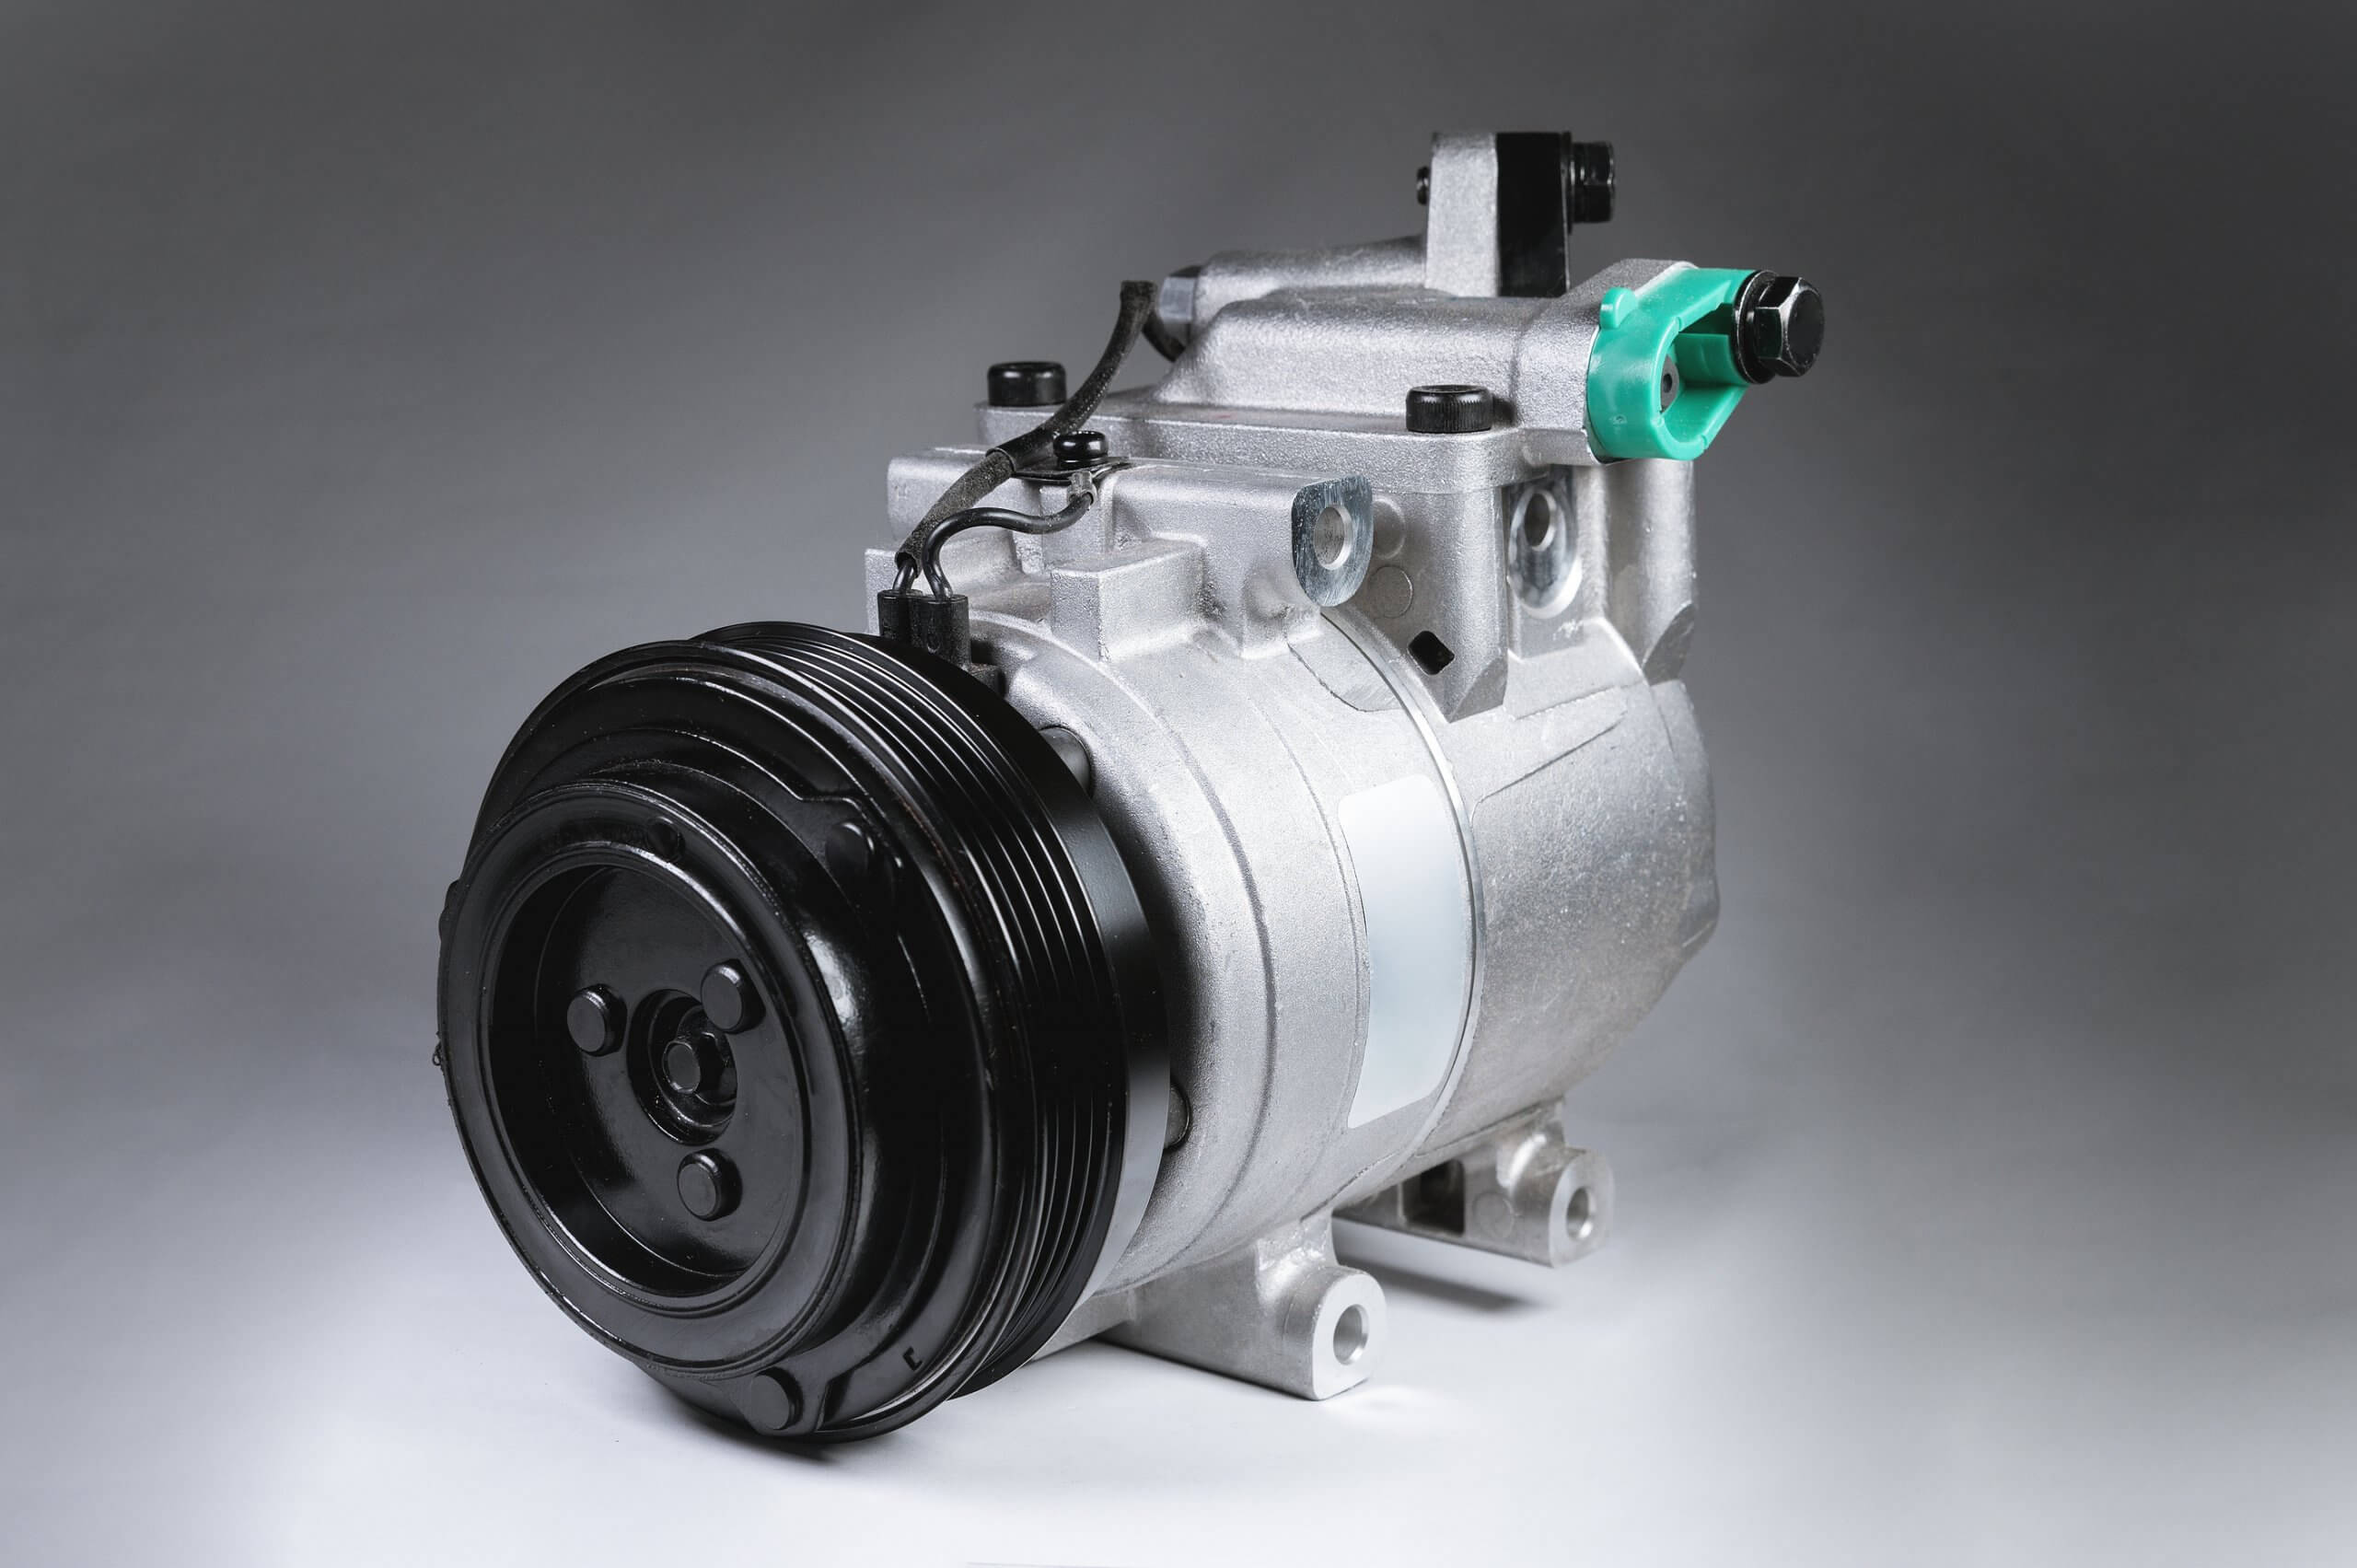 close up of a car air conditioning compressor on grey background